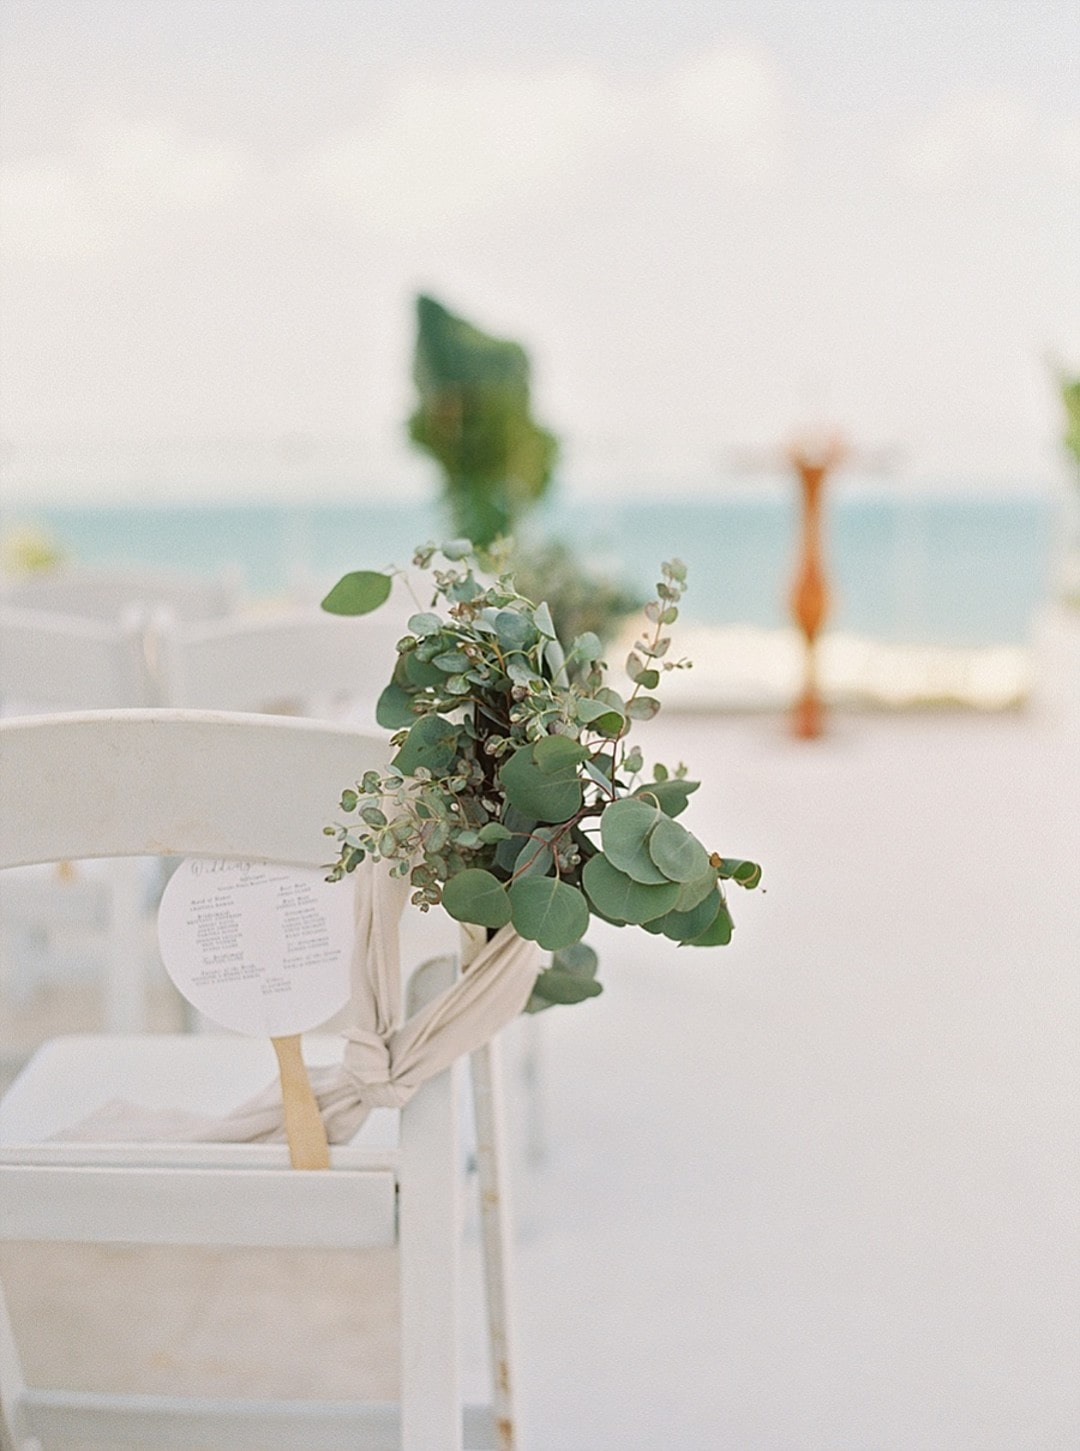 Dreams Playa Mujeres resort, Photography by A. Thomas Photography for Luxury Destination Wedding Blog Adriana Weddings